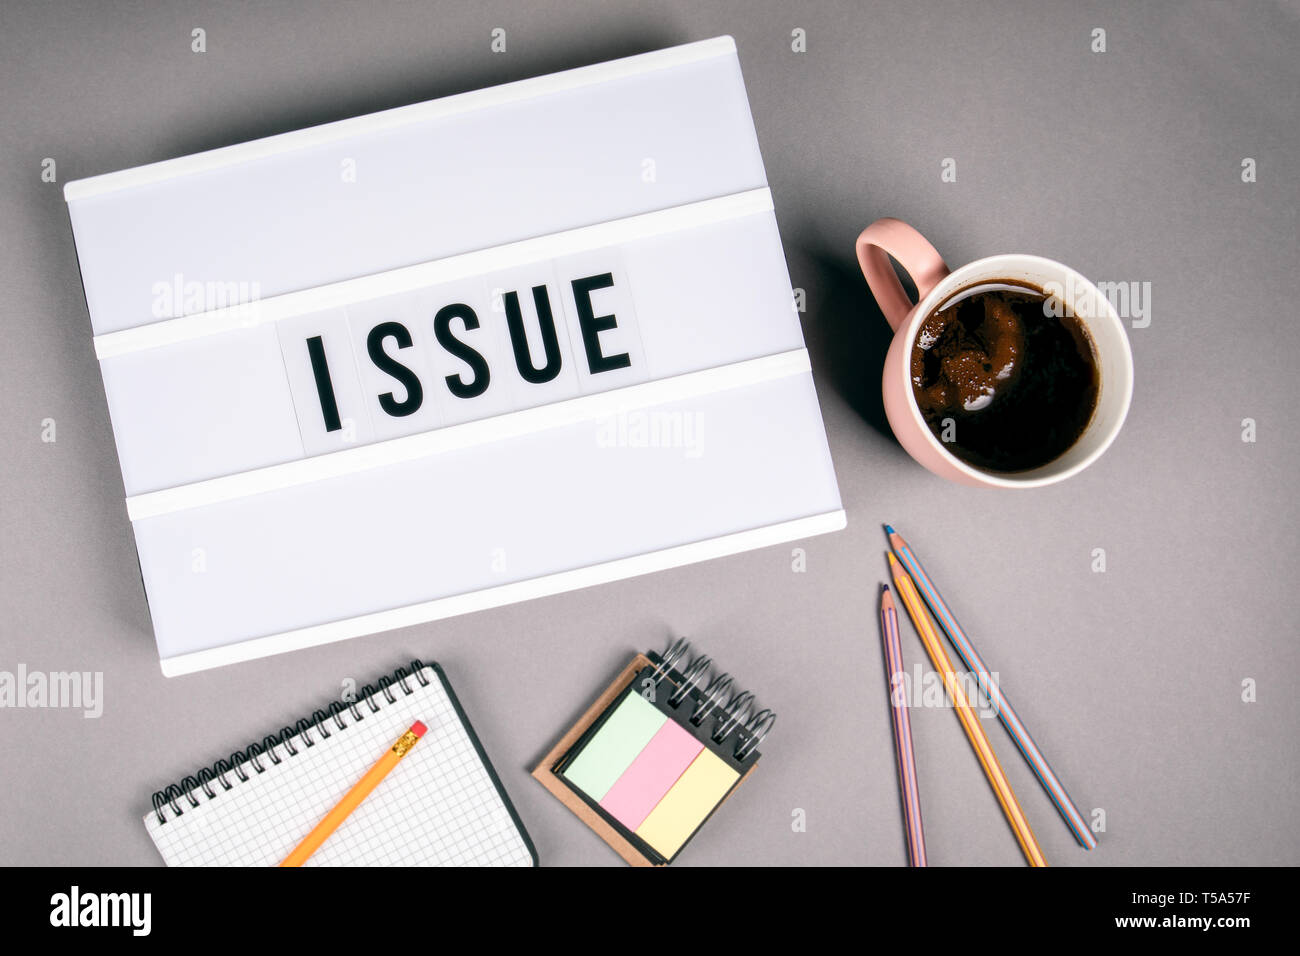 Issue. Text in light box - Stock Image